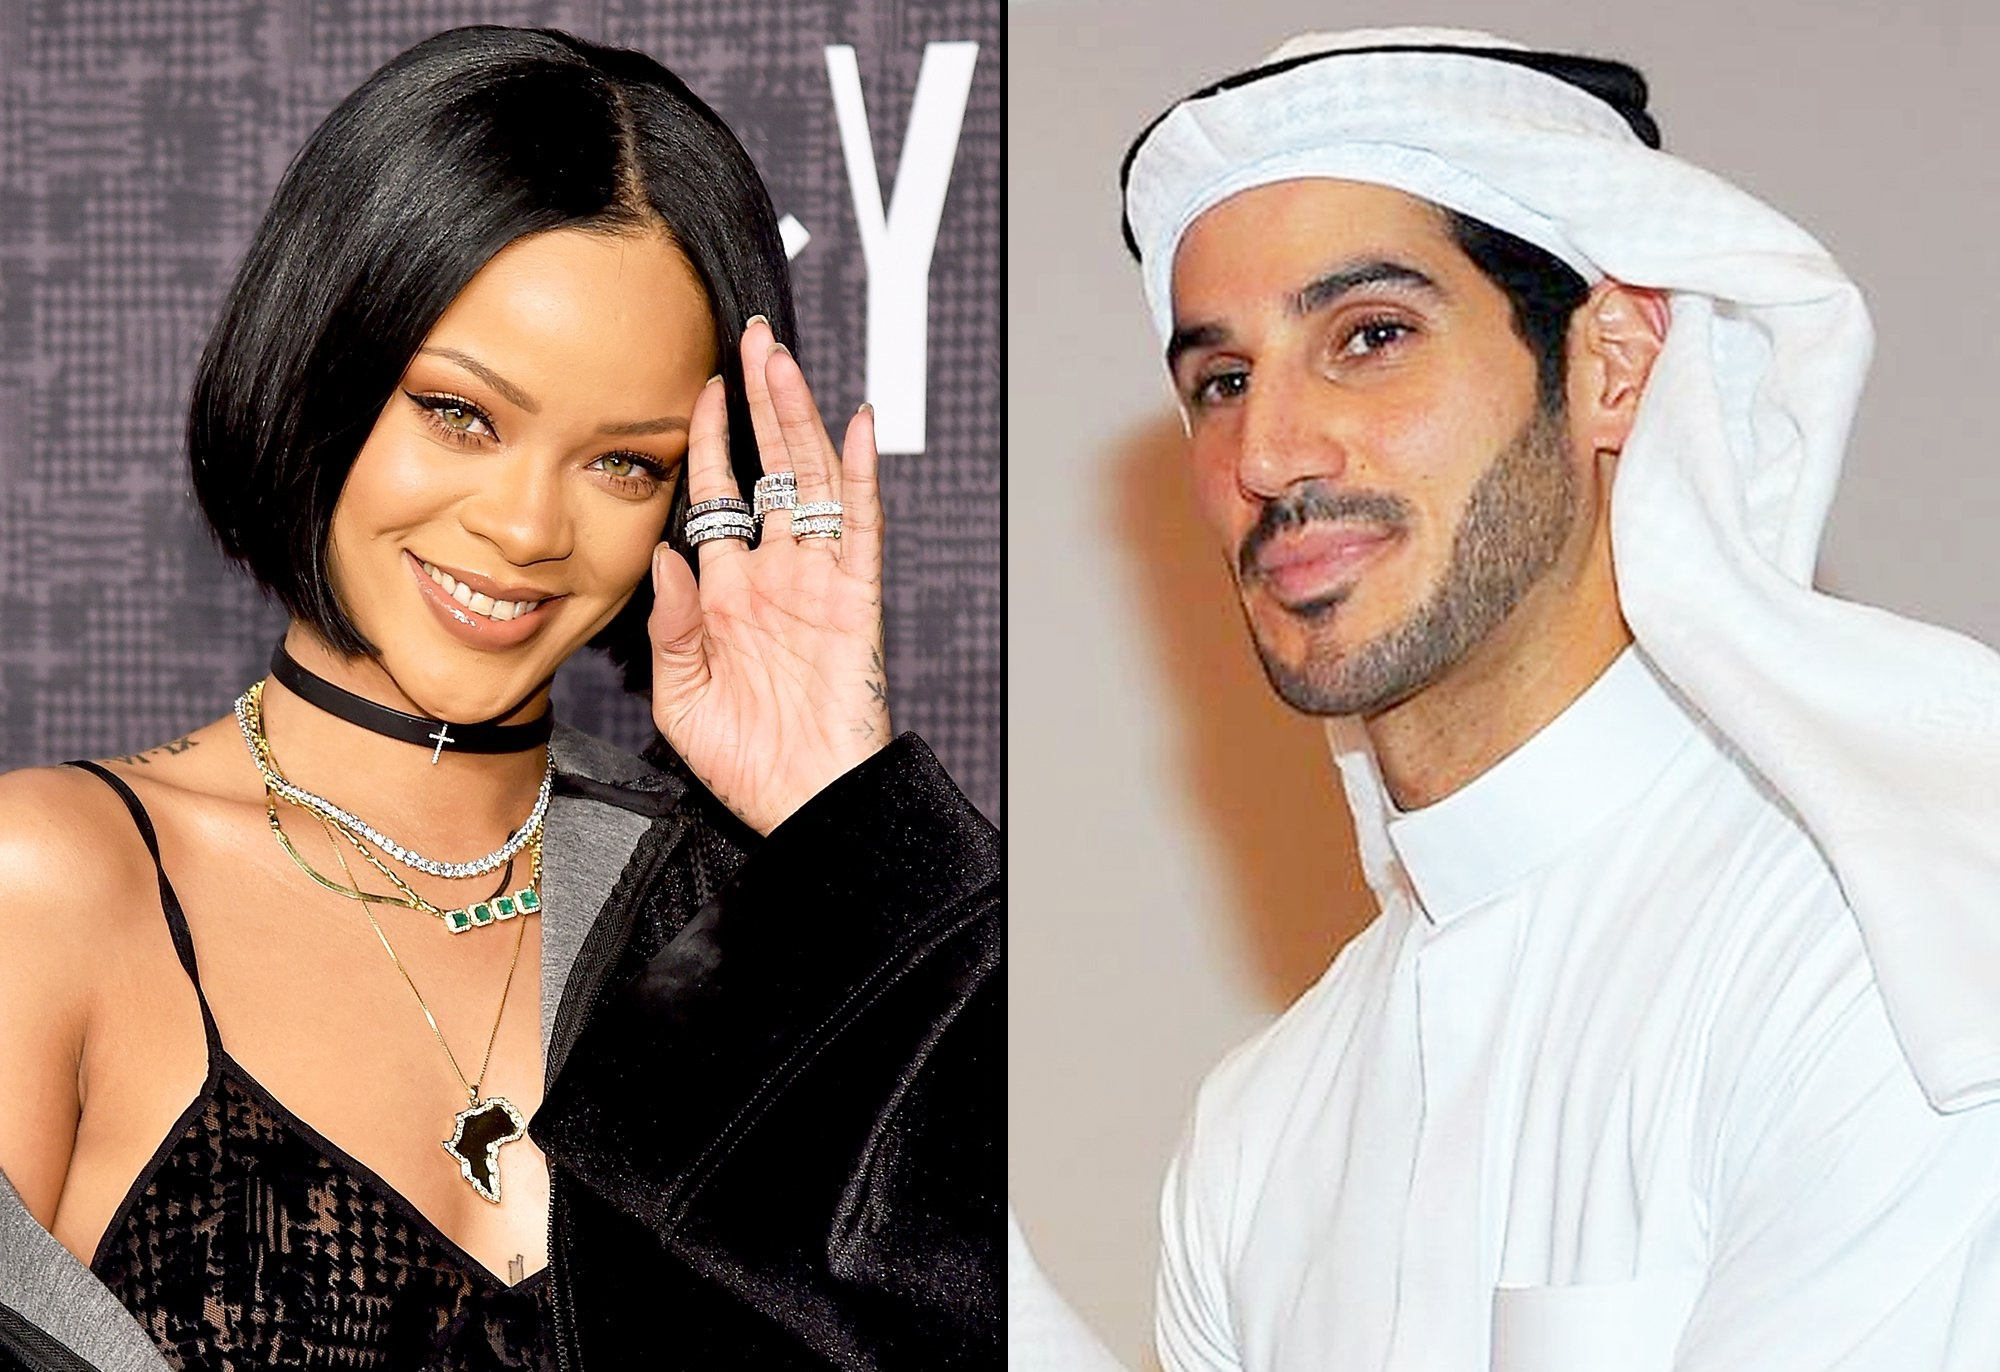 rihanna-looks-pregnant-and-in-love-in-pictures-on-romantic-vacation-with-hassan-jameel-and-his-family